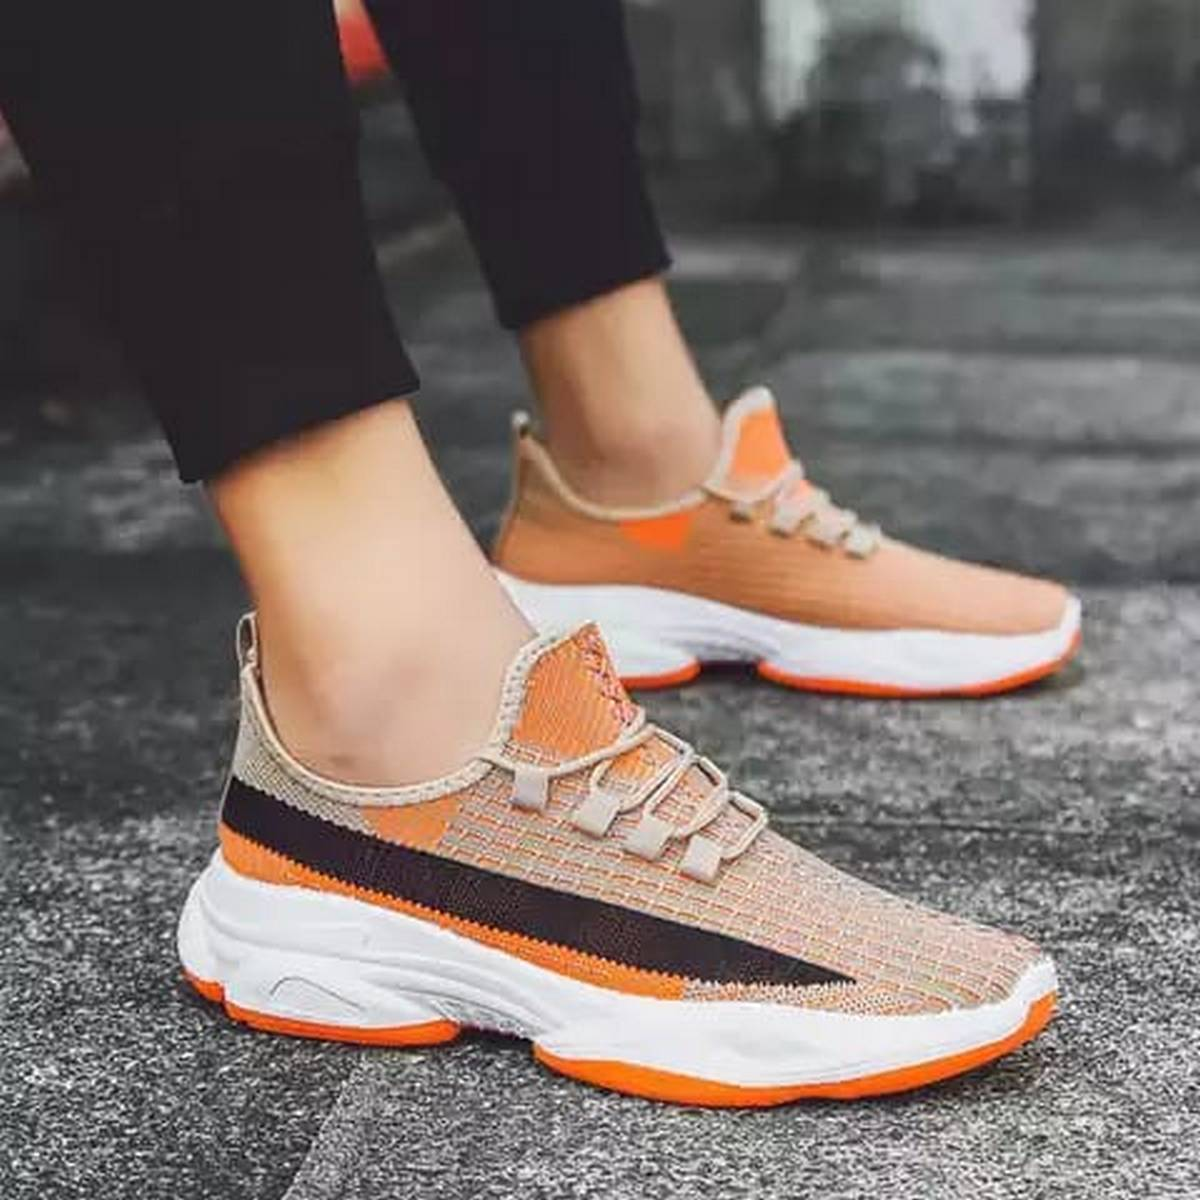 Stylish Sneakers Shoes Casual & Party Wear Joggers